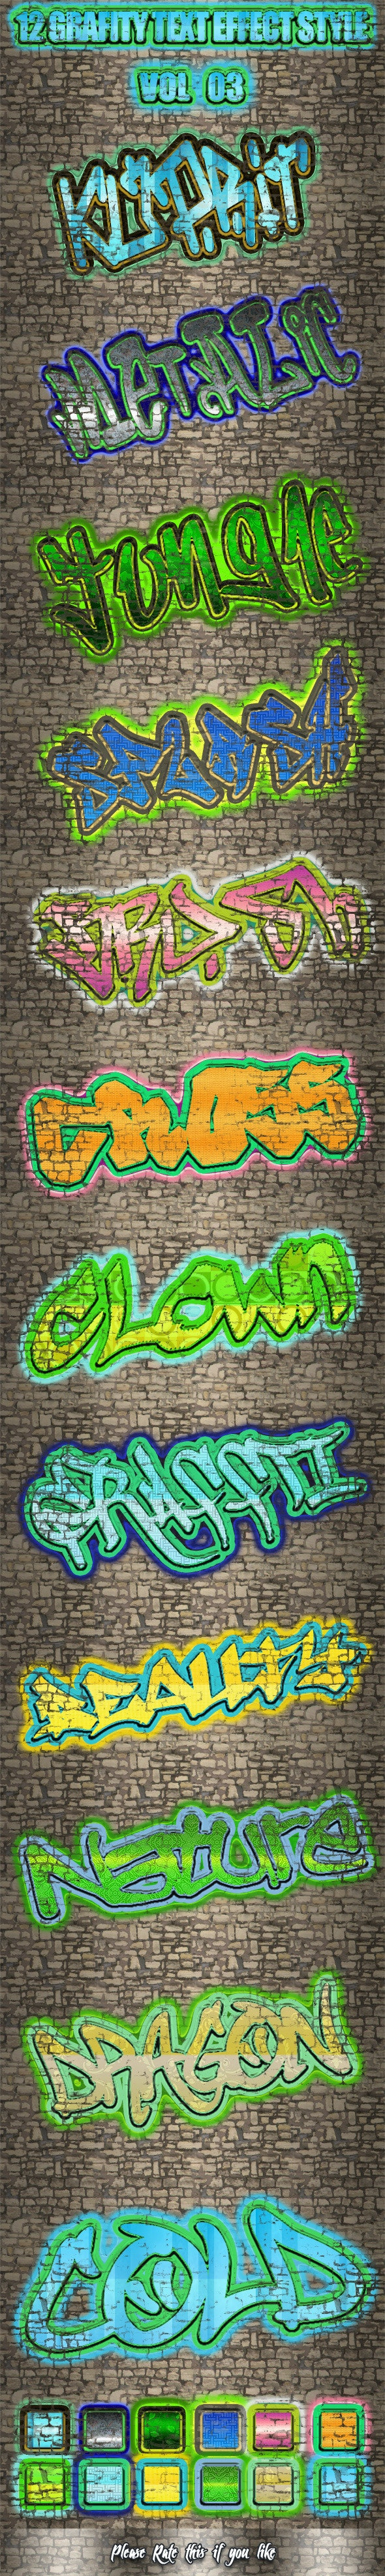 12 Grafity Text Effect Styles Vol 3 - Text Effects Styles